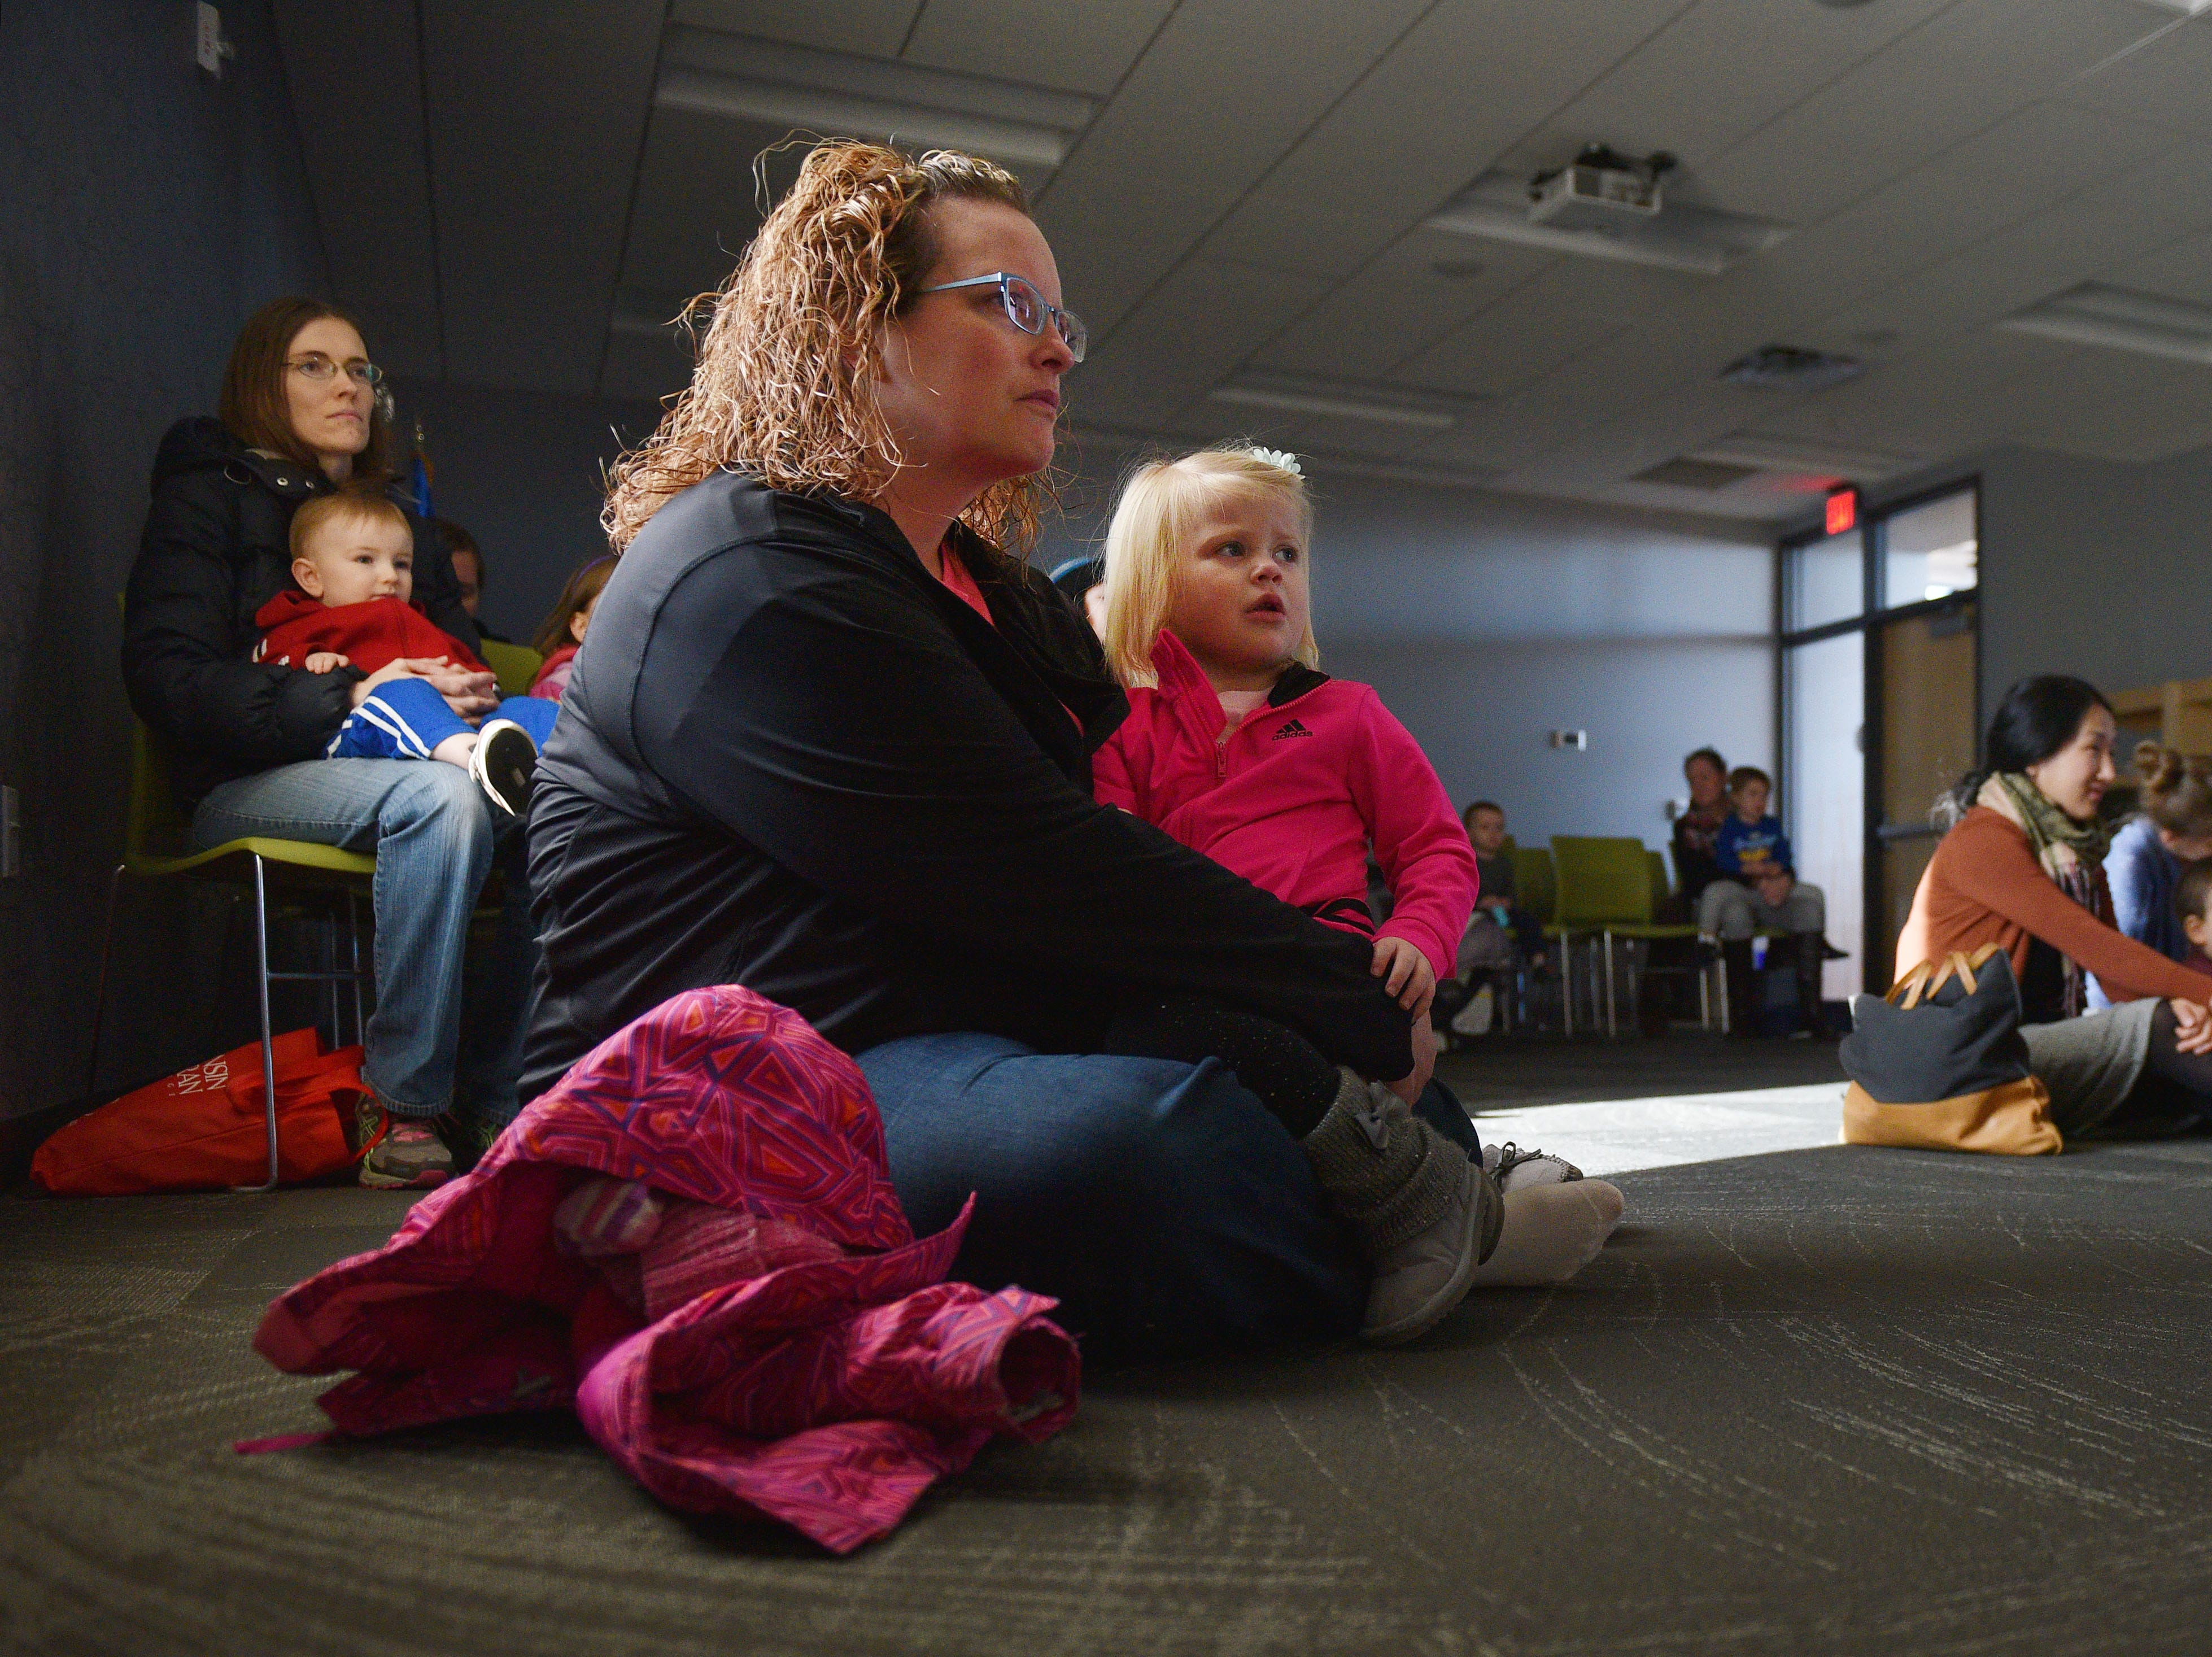 Heather Pike and her daughter Haddie Jo Pike watch The Christmas Gift puppet show at the Prairie West Branch Wednesday, Dec. 5, in Sioux Falls.